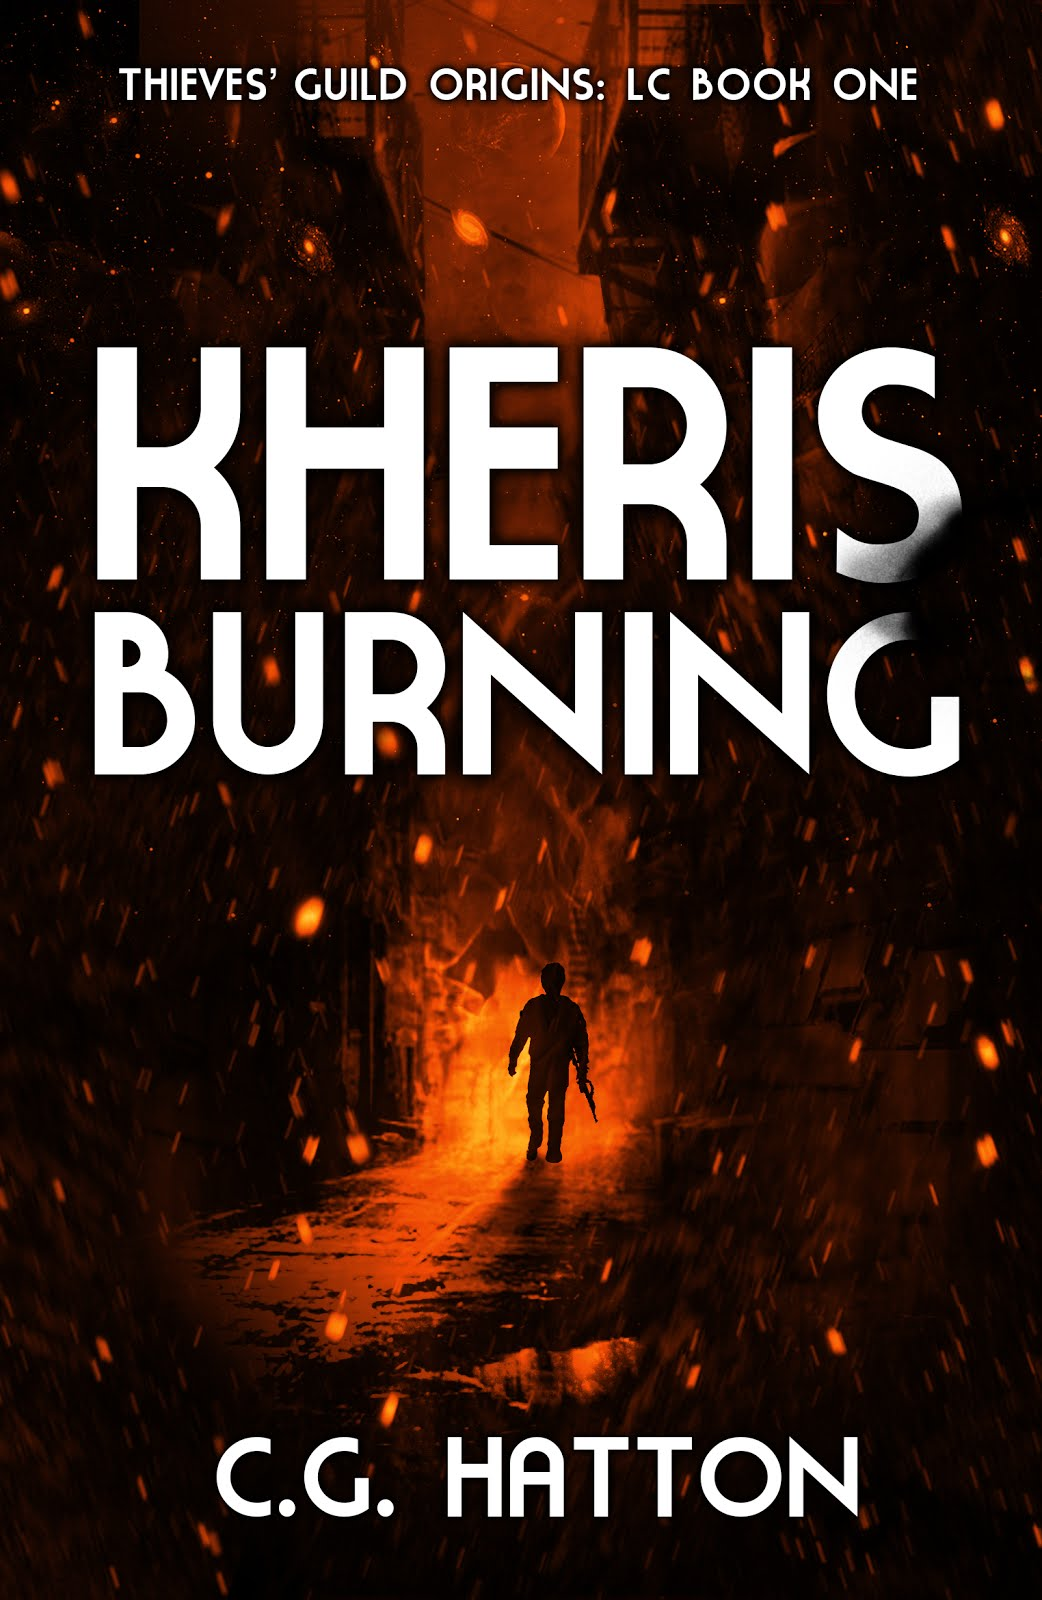 Kheris Burning